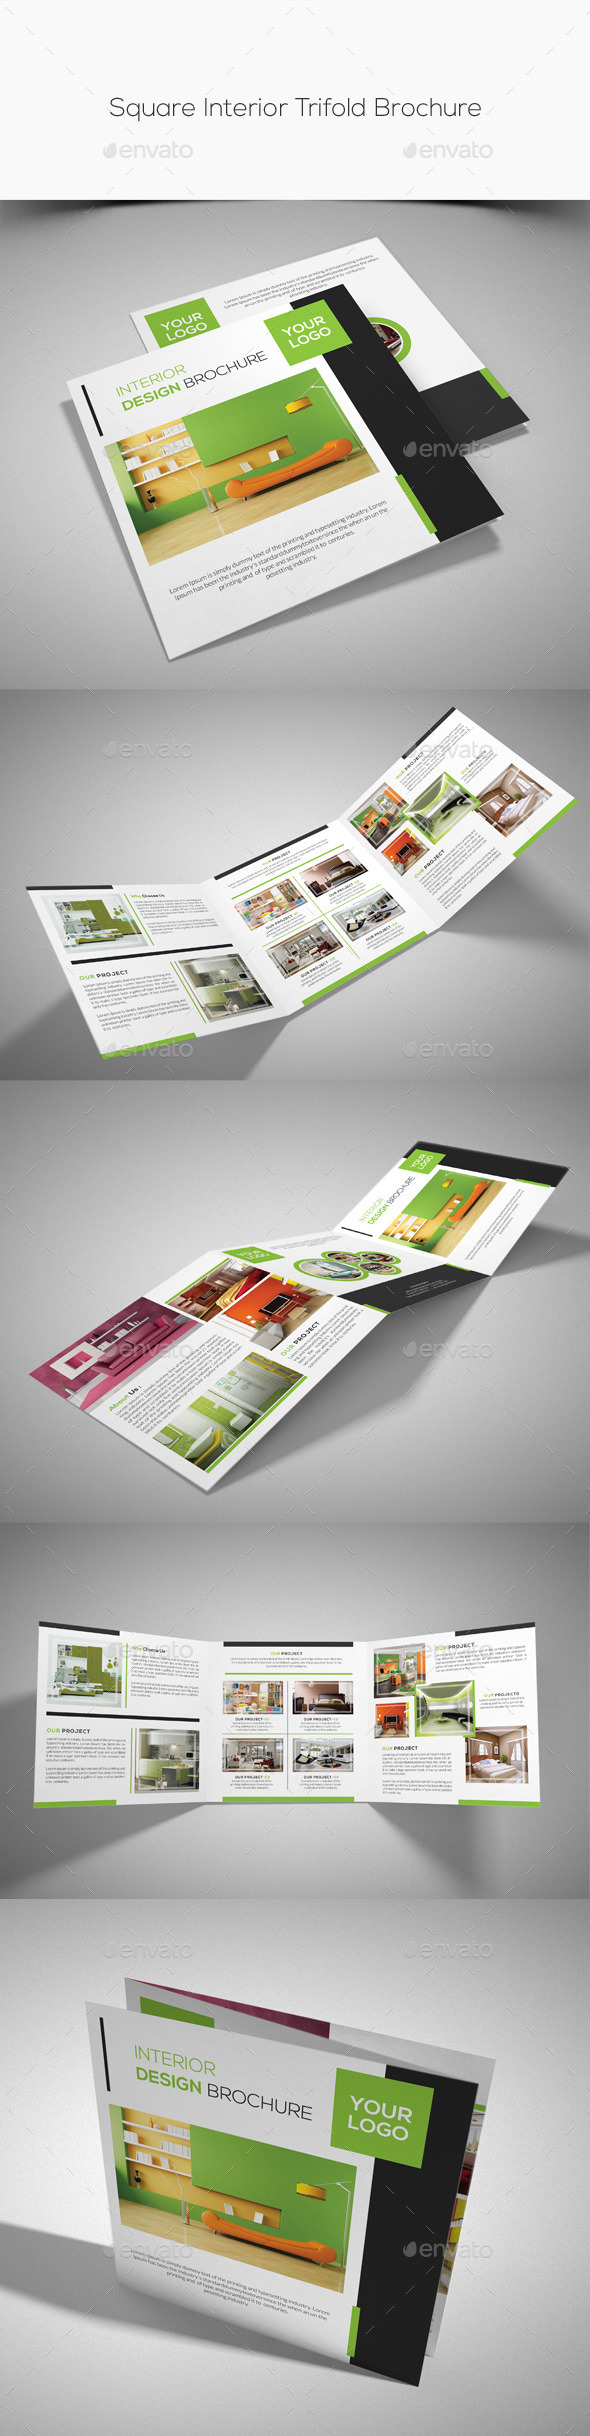 GraphicRiver Square Interior Trifold Brochure 10292707